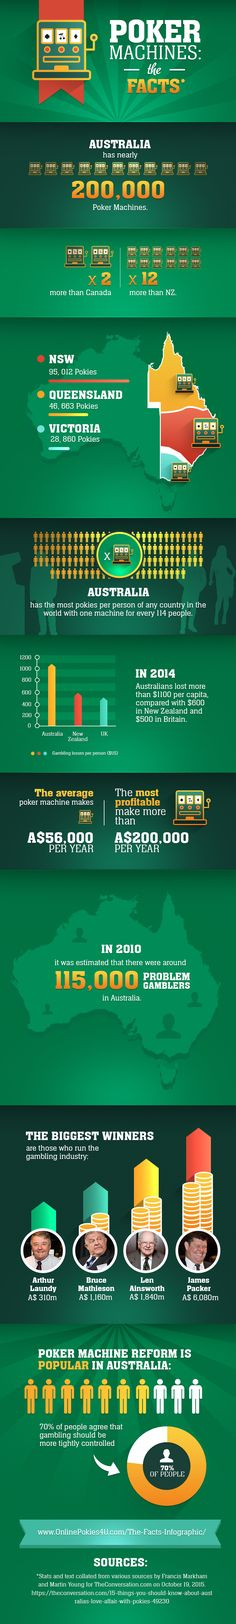 The hard facts about Poker Machines in Australia and the effect they have on…